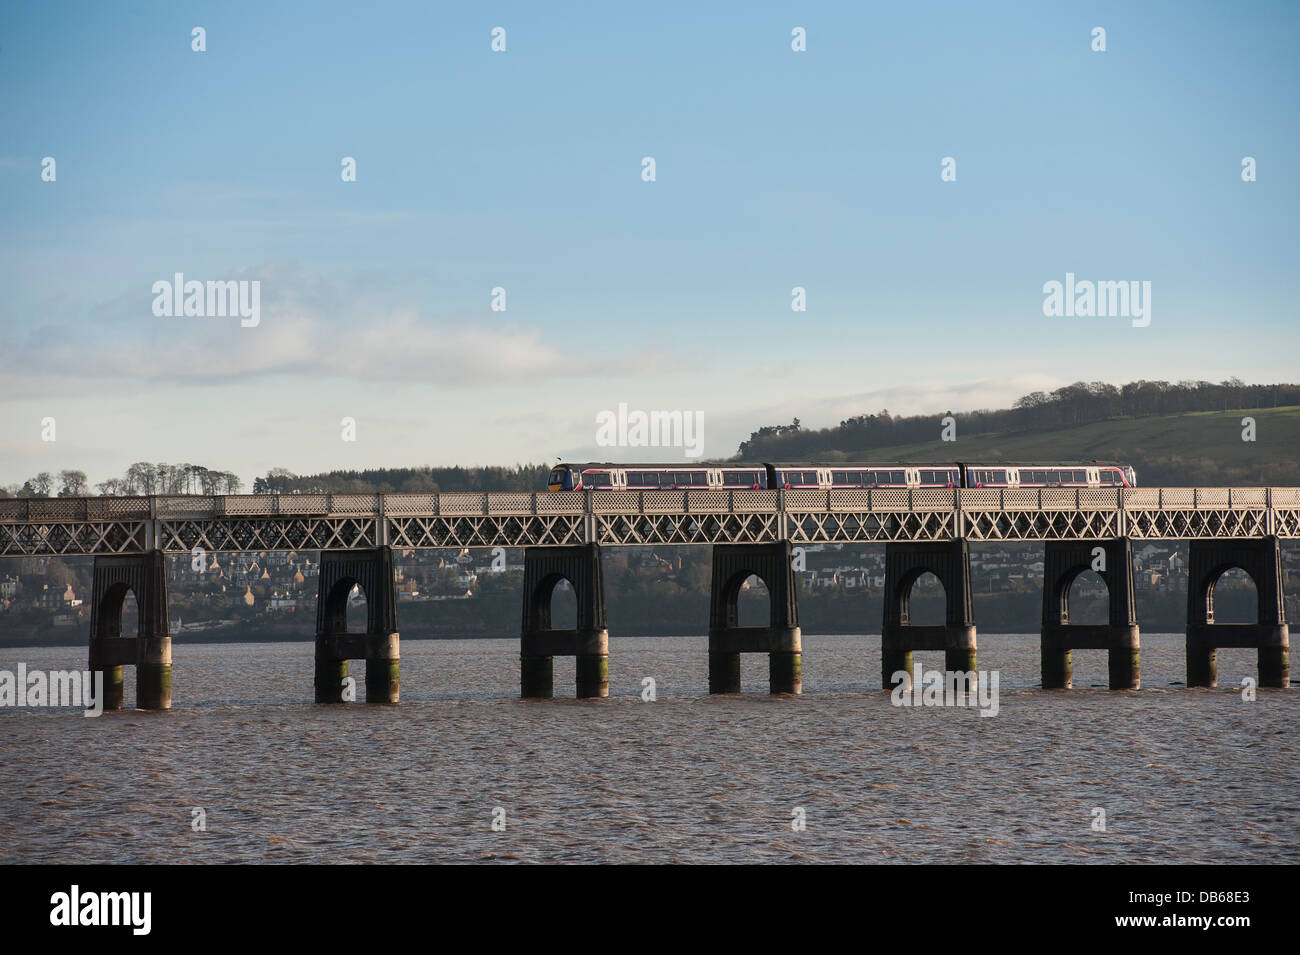 First Scotrail train crossing the Tay Rail Bridge spanning the Firth of Tay, Scotland. - Stock Image